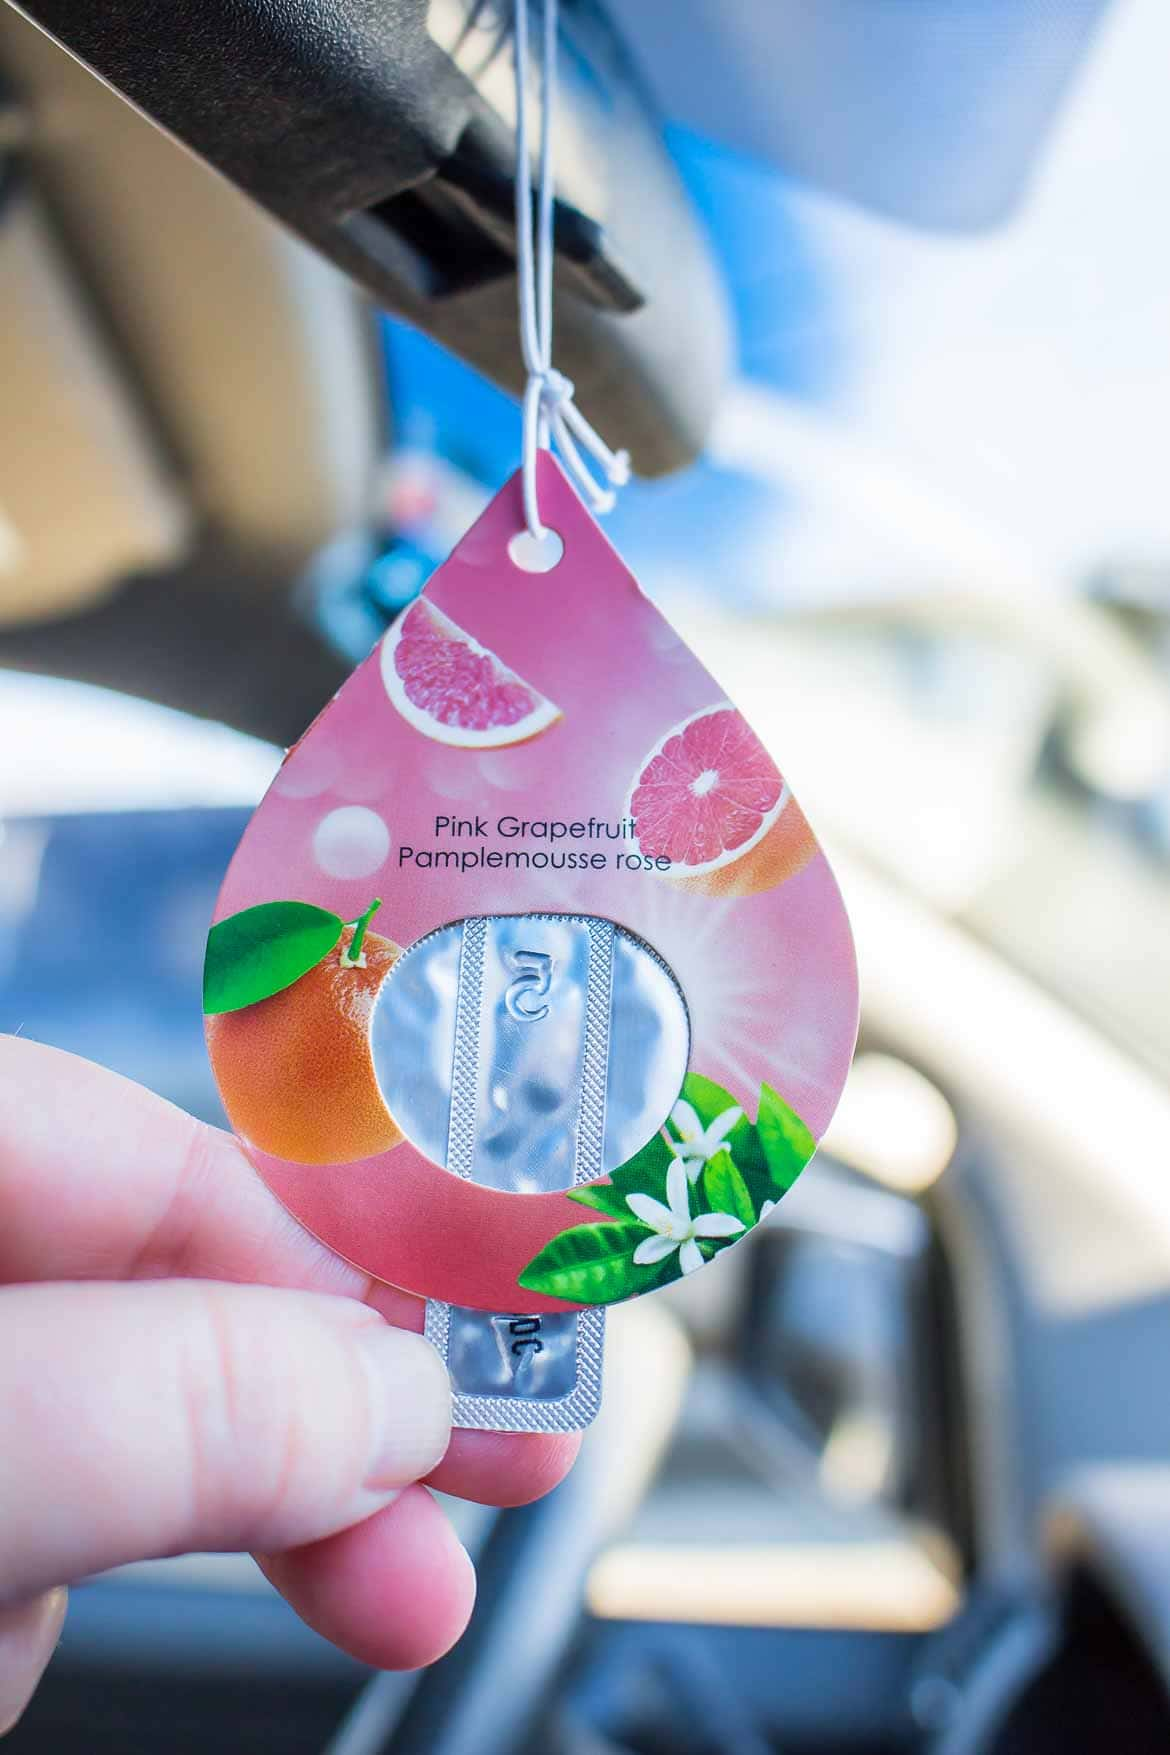 Armor All Essential Blends air fresheners activate by pulling tab